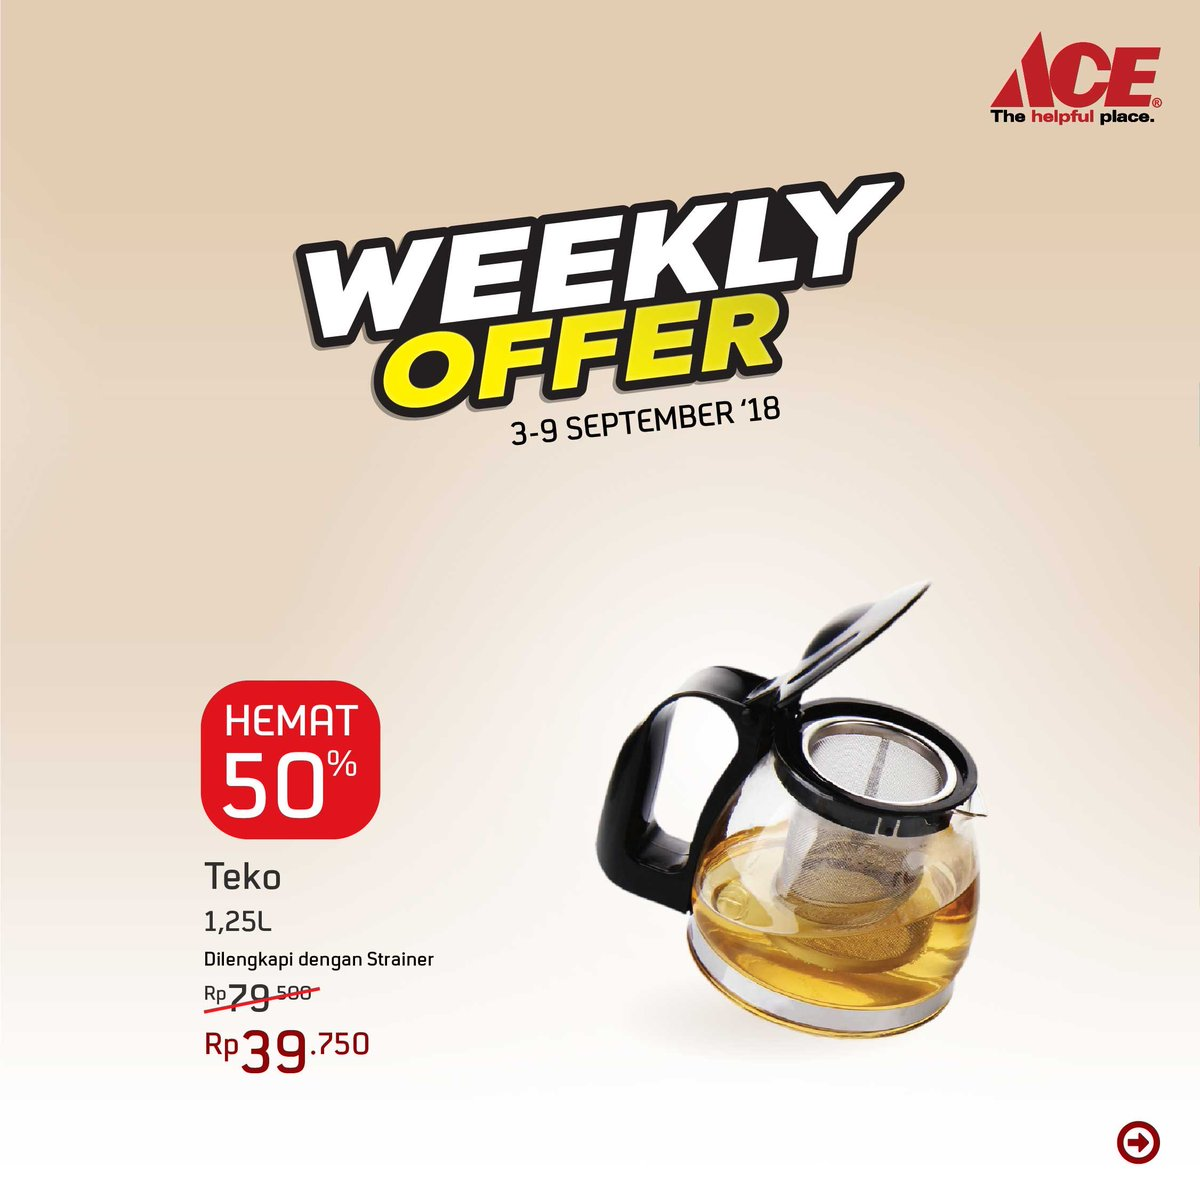 AceHardware - Promo Weekly Offer Harga Khusus (s.d 9 Sept 2018)